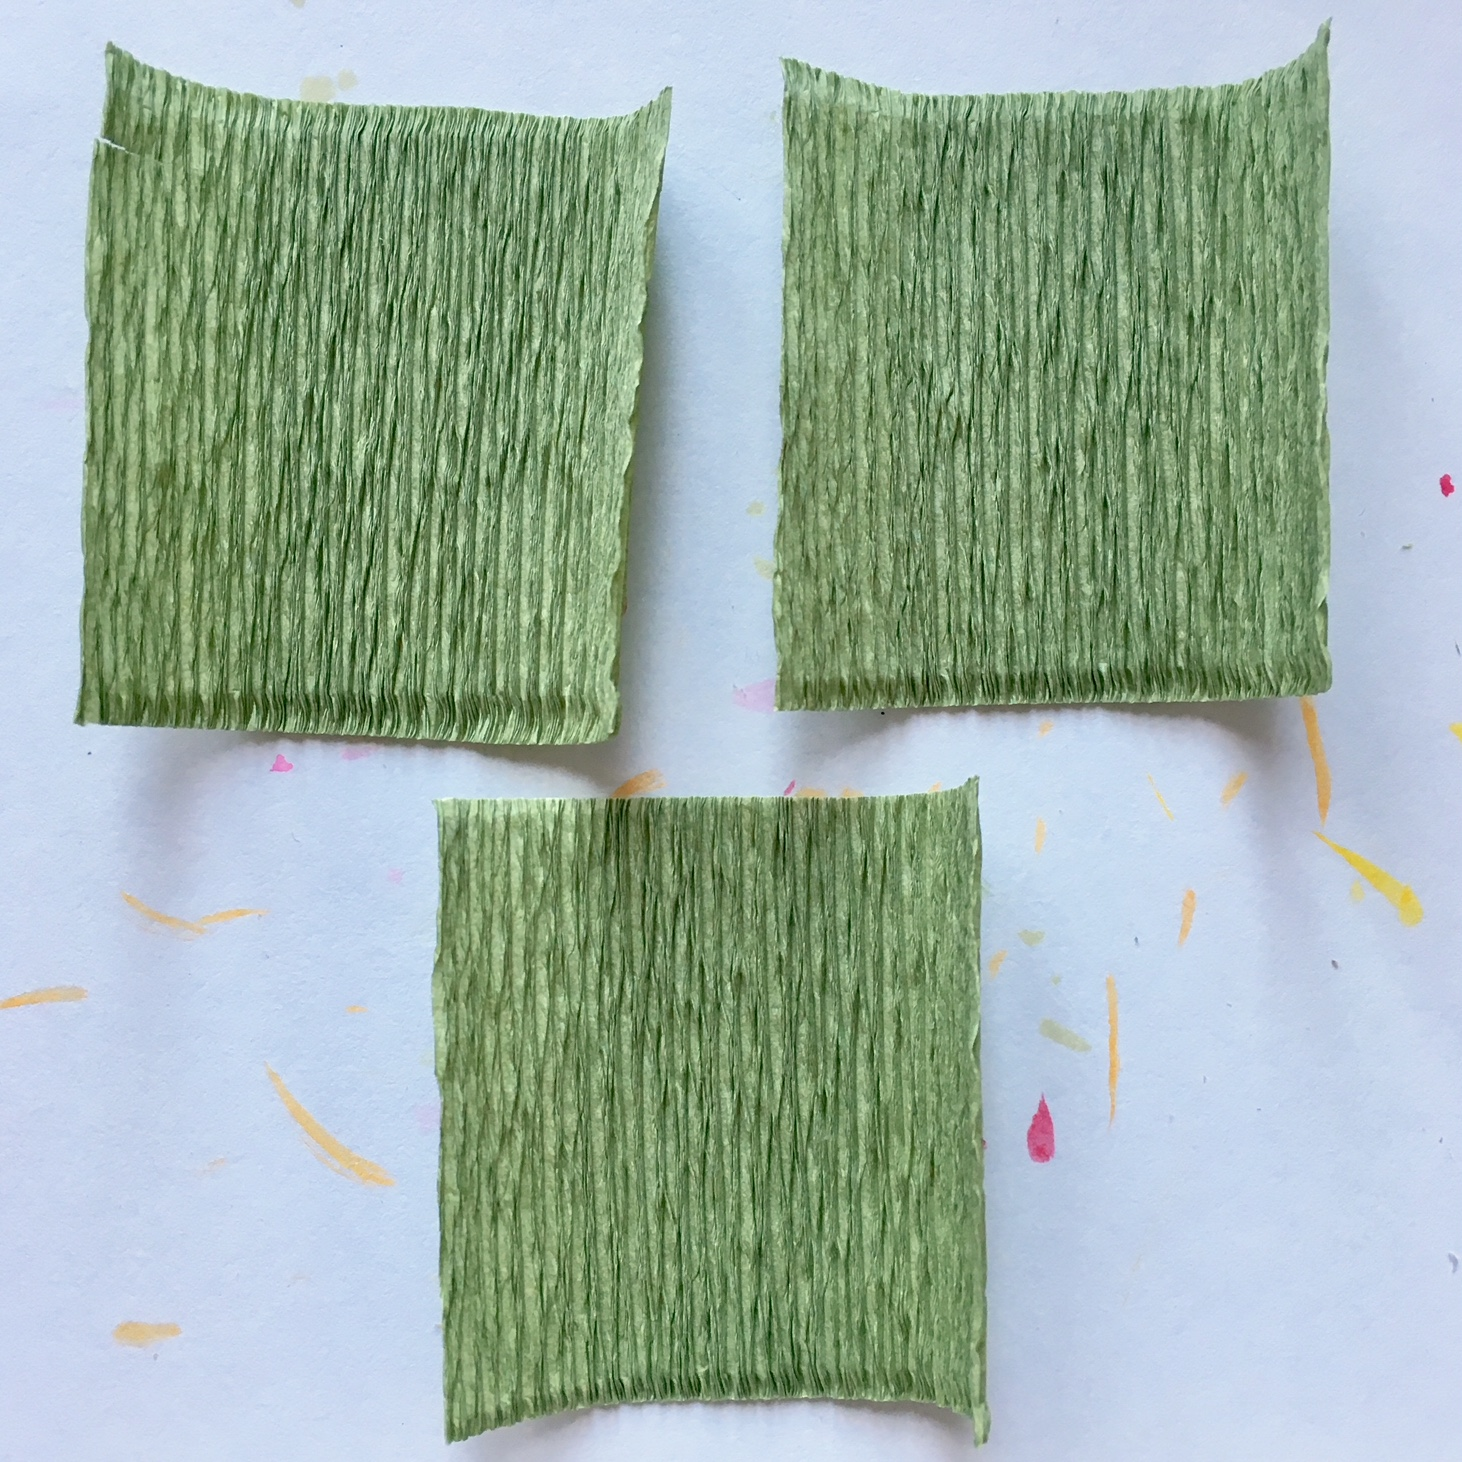 3 green crepe paper rectangles for making leaves